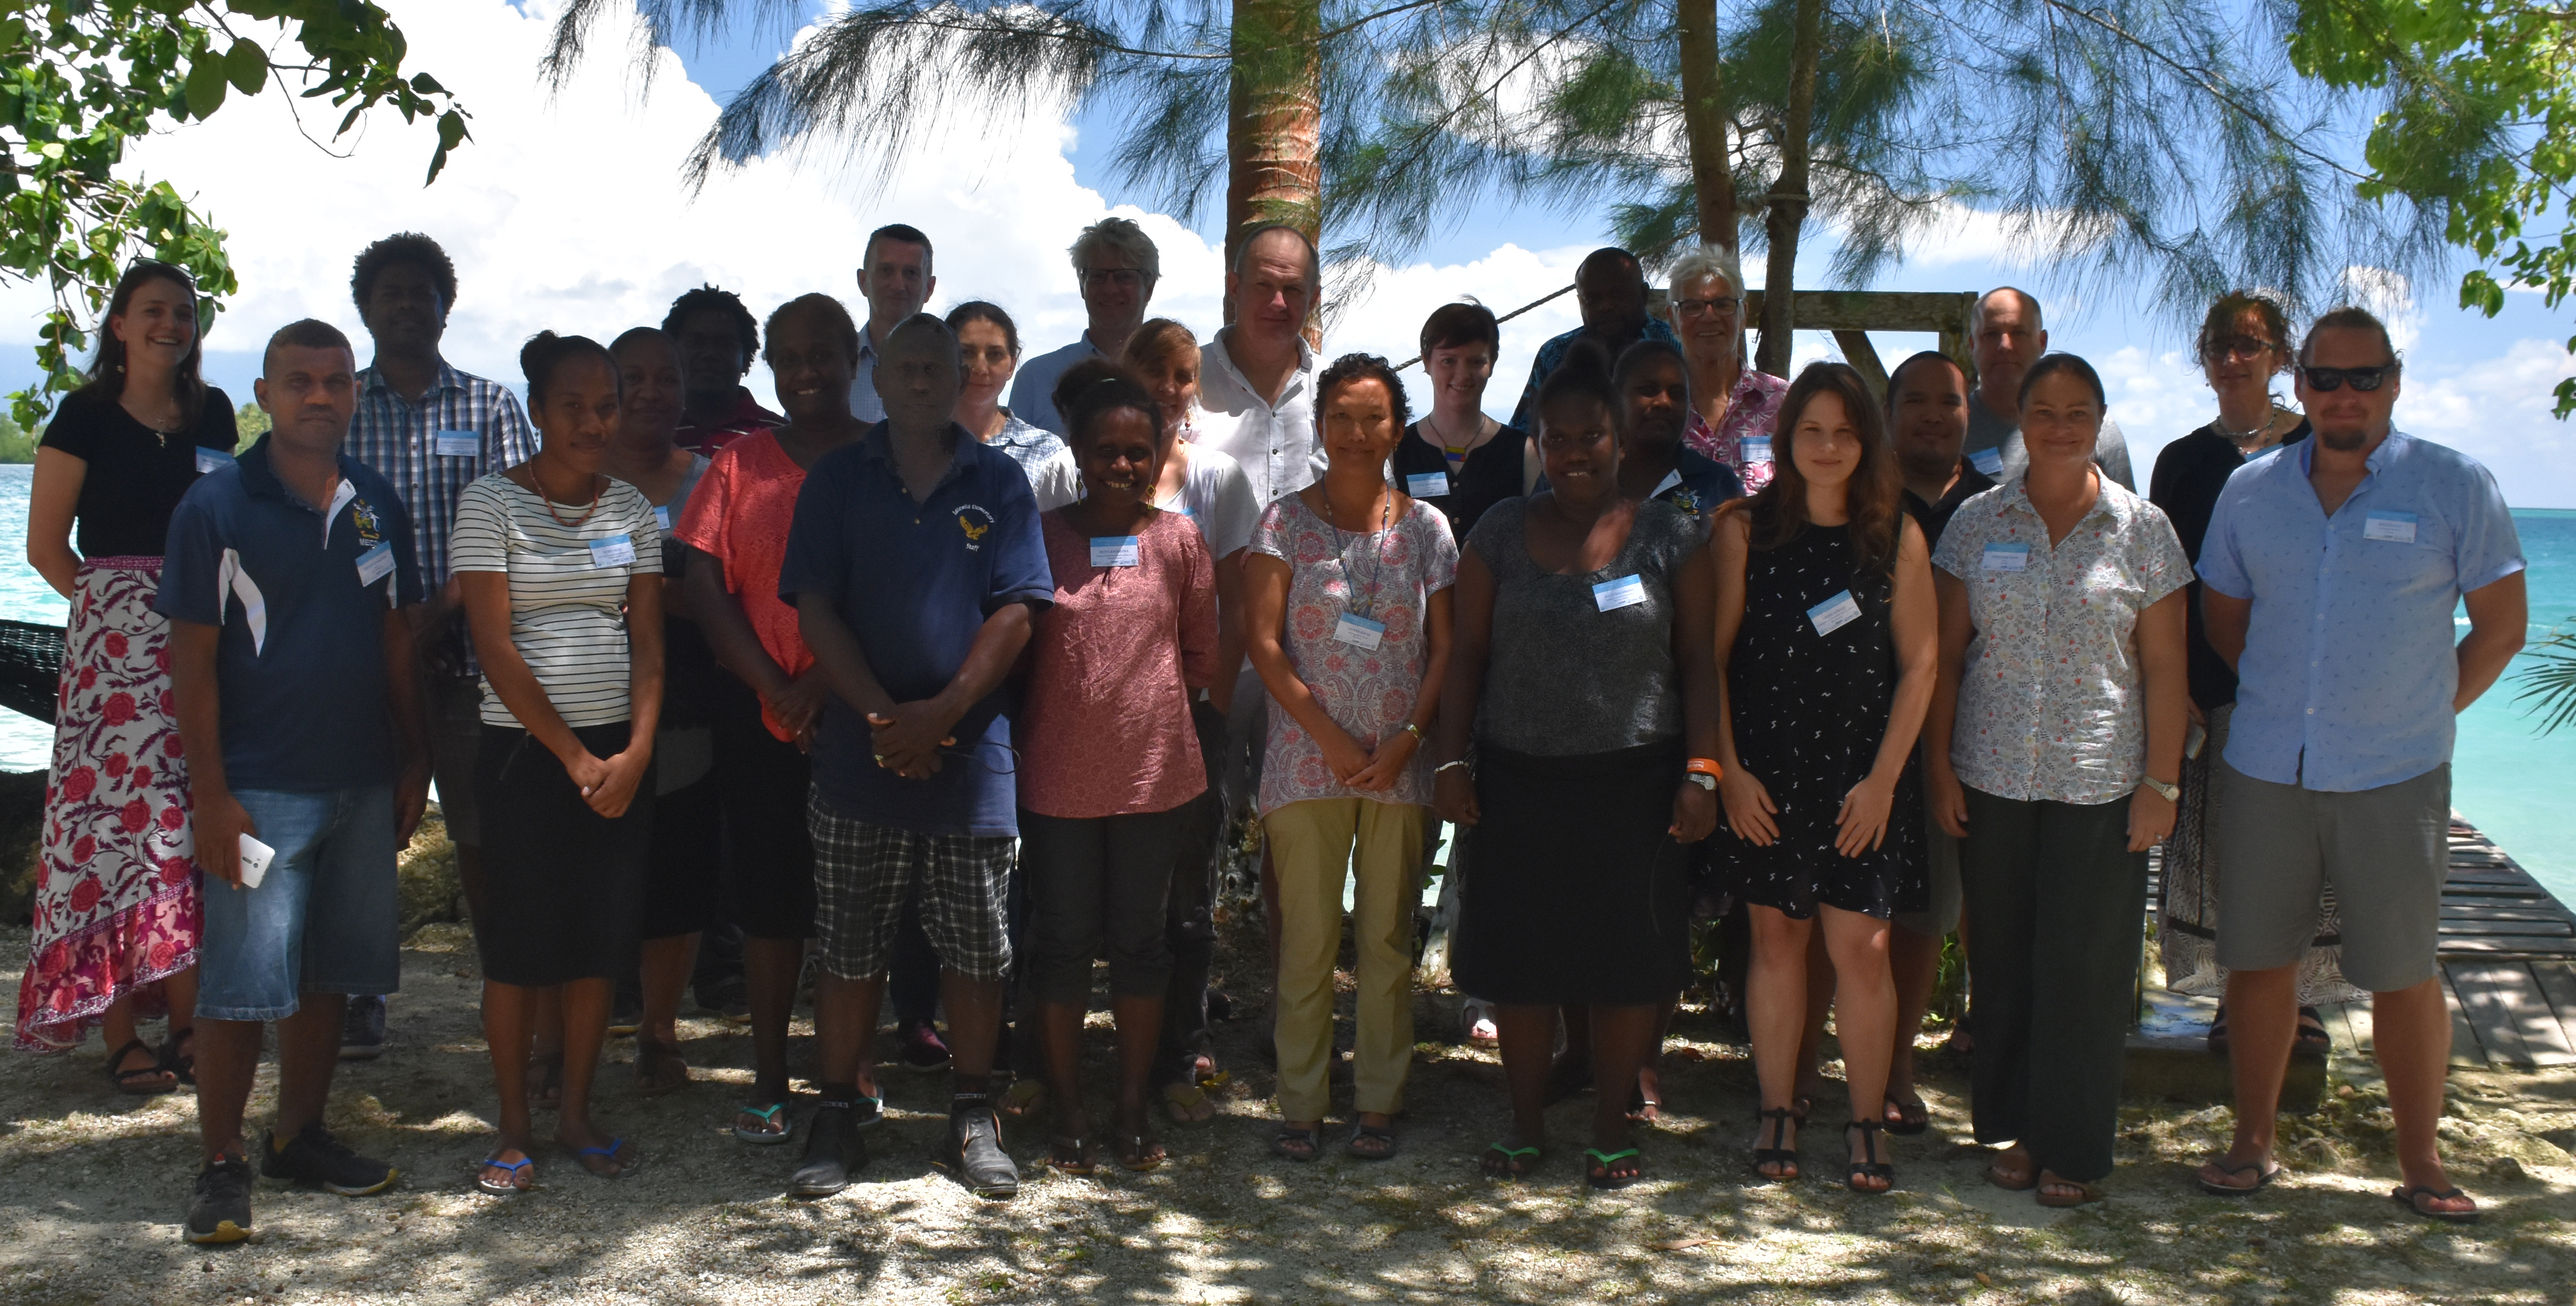 Regional Dugong and Seagrass Workshop